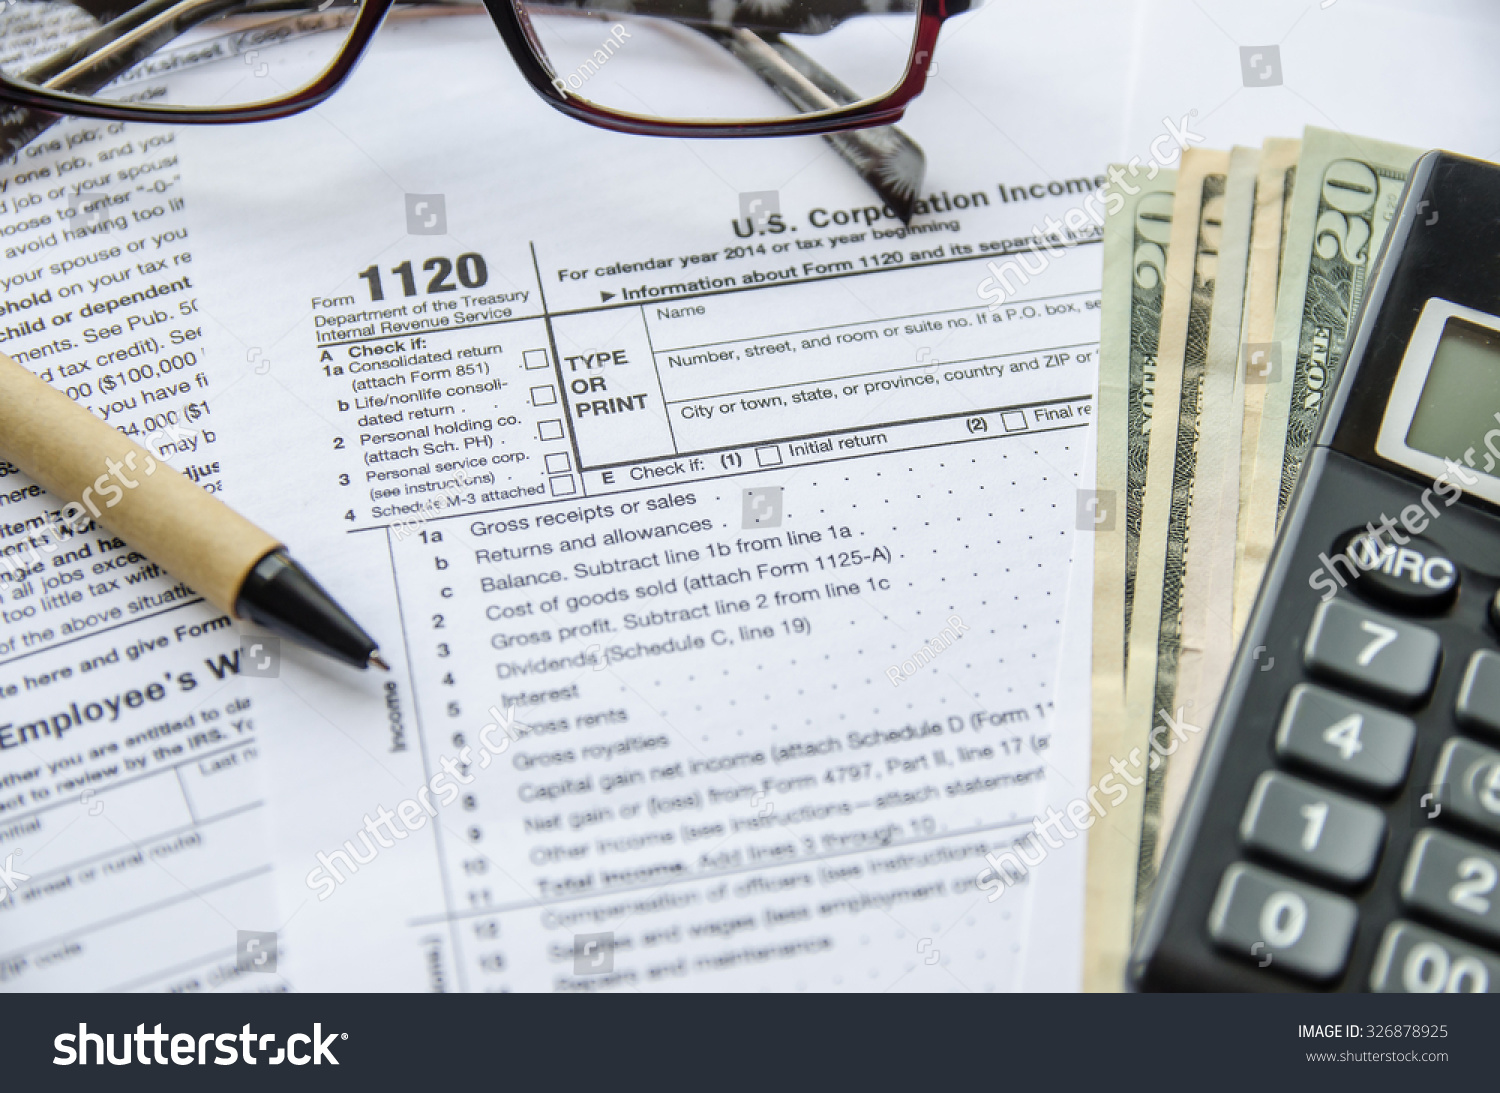 Form 1120 Corporate Tax Return Stock Photo 326878925 - Shutterstock